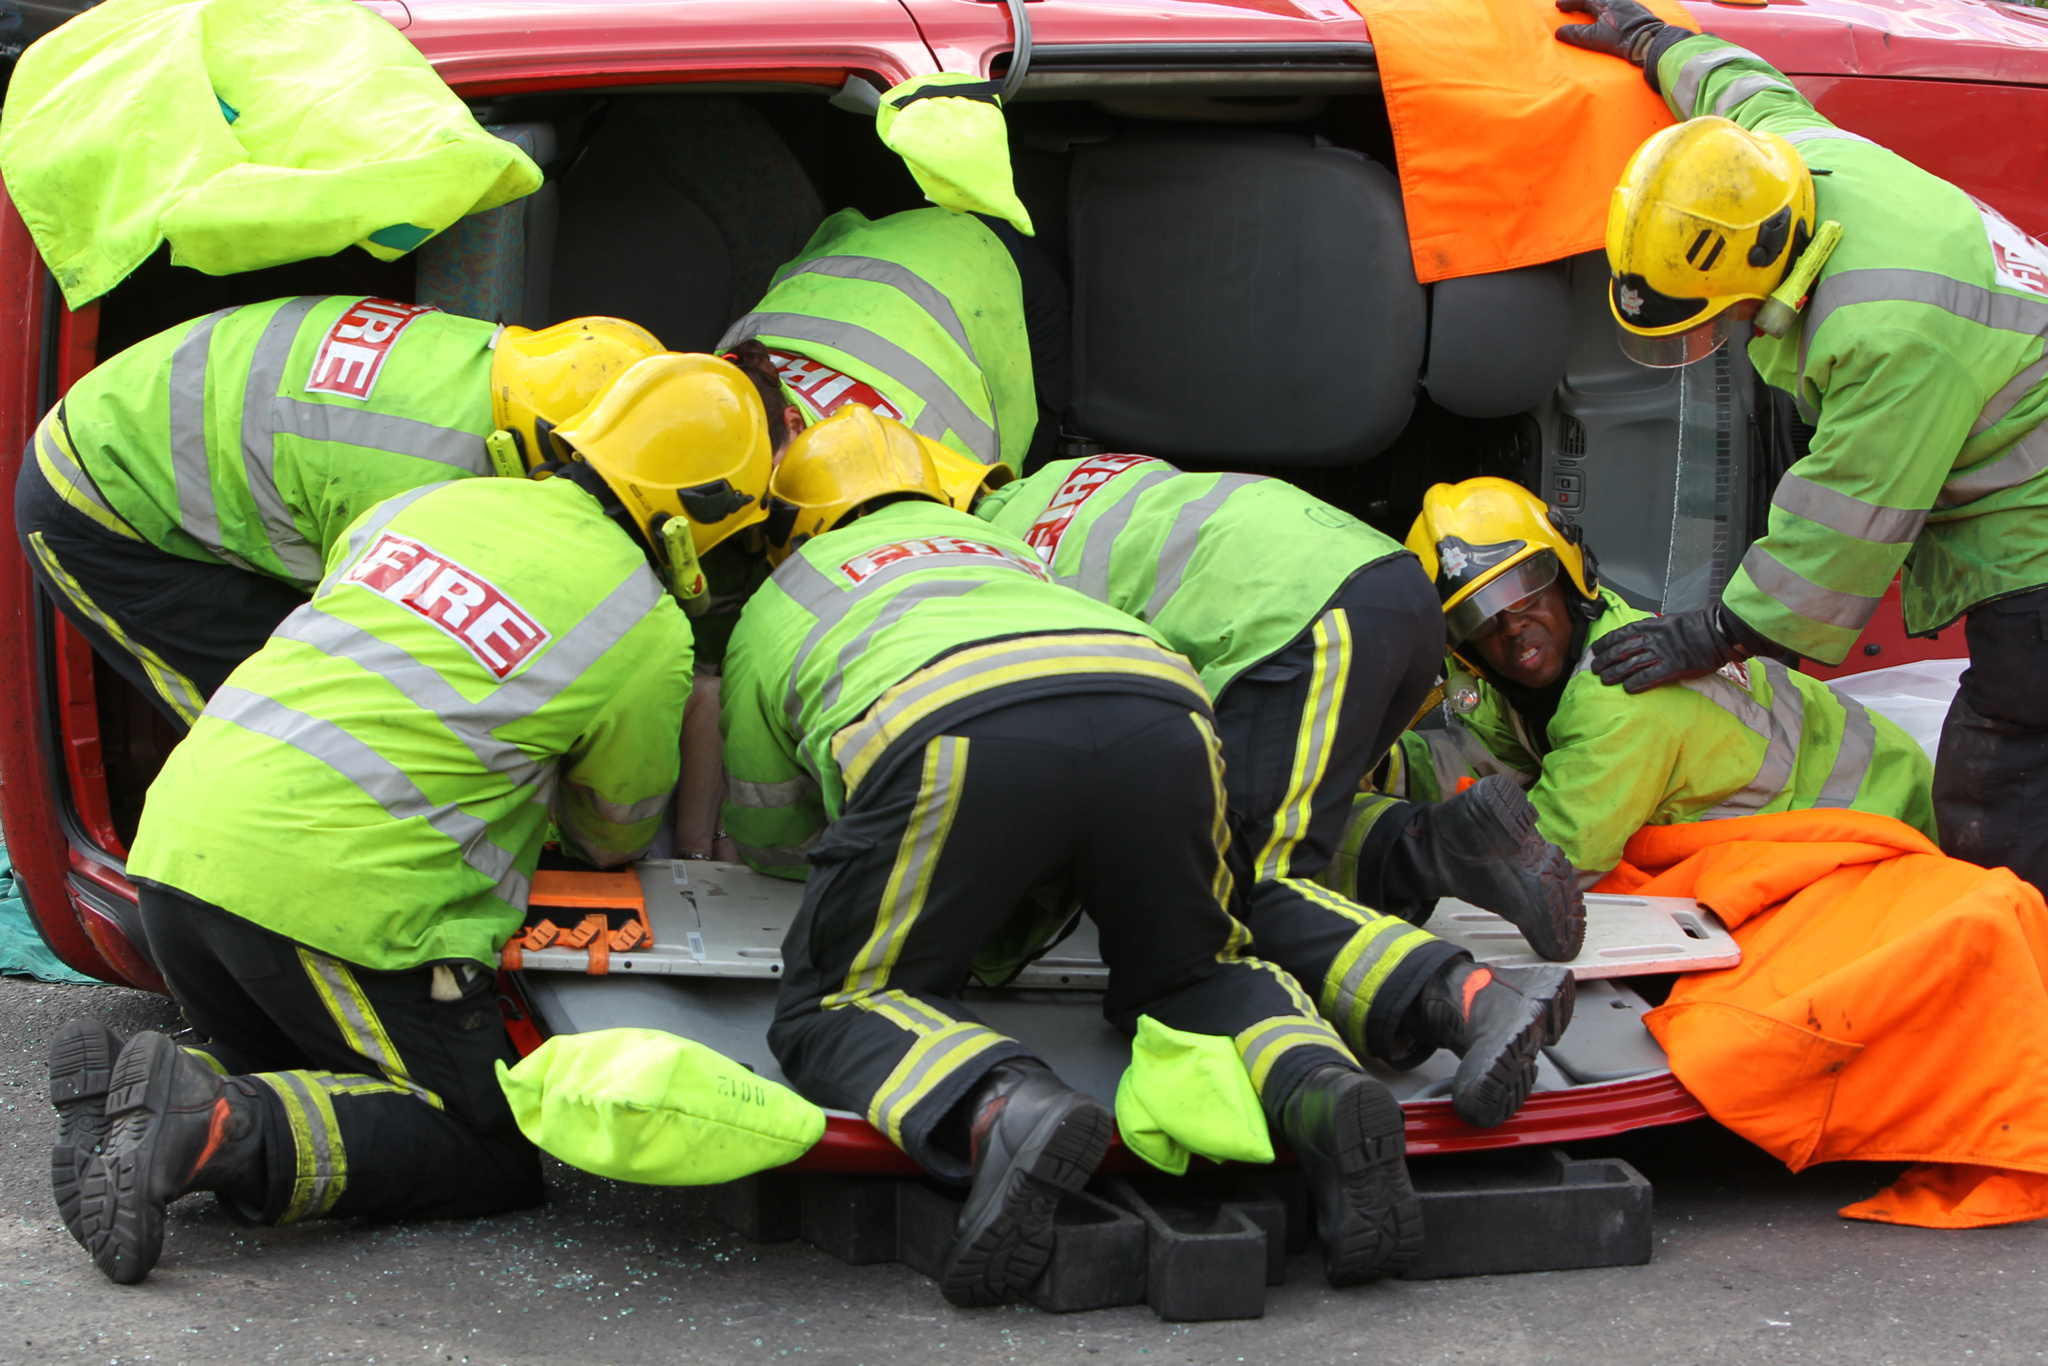 West Midlands Fire Service will run an Extrication Challenge at The Emergency Services Show hosted at the NEC this year